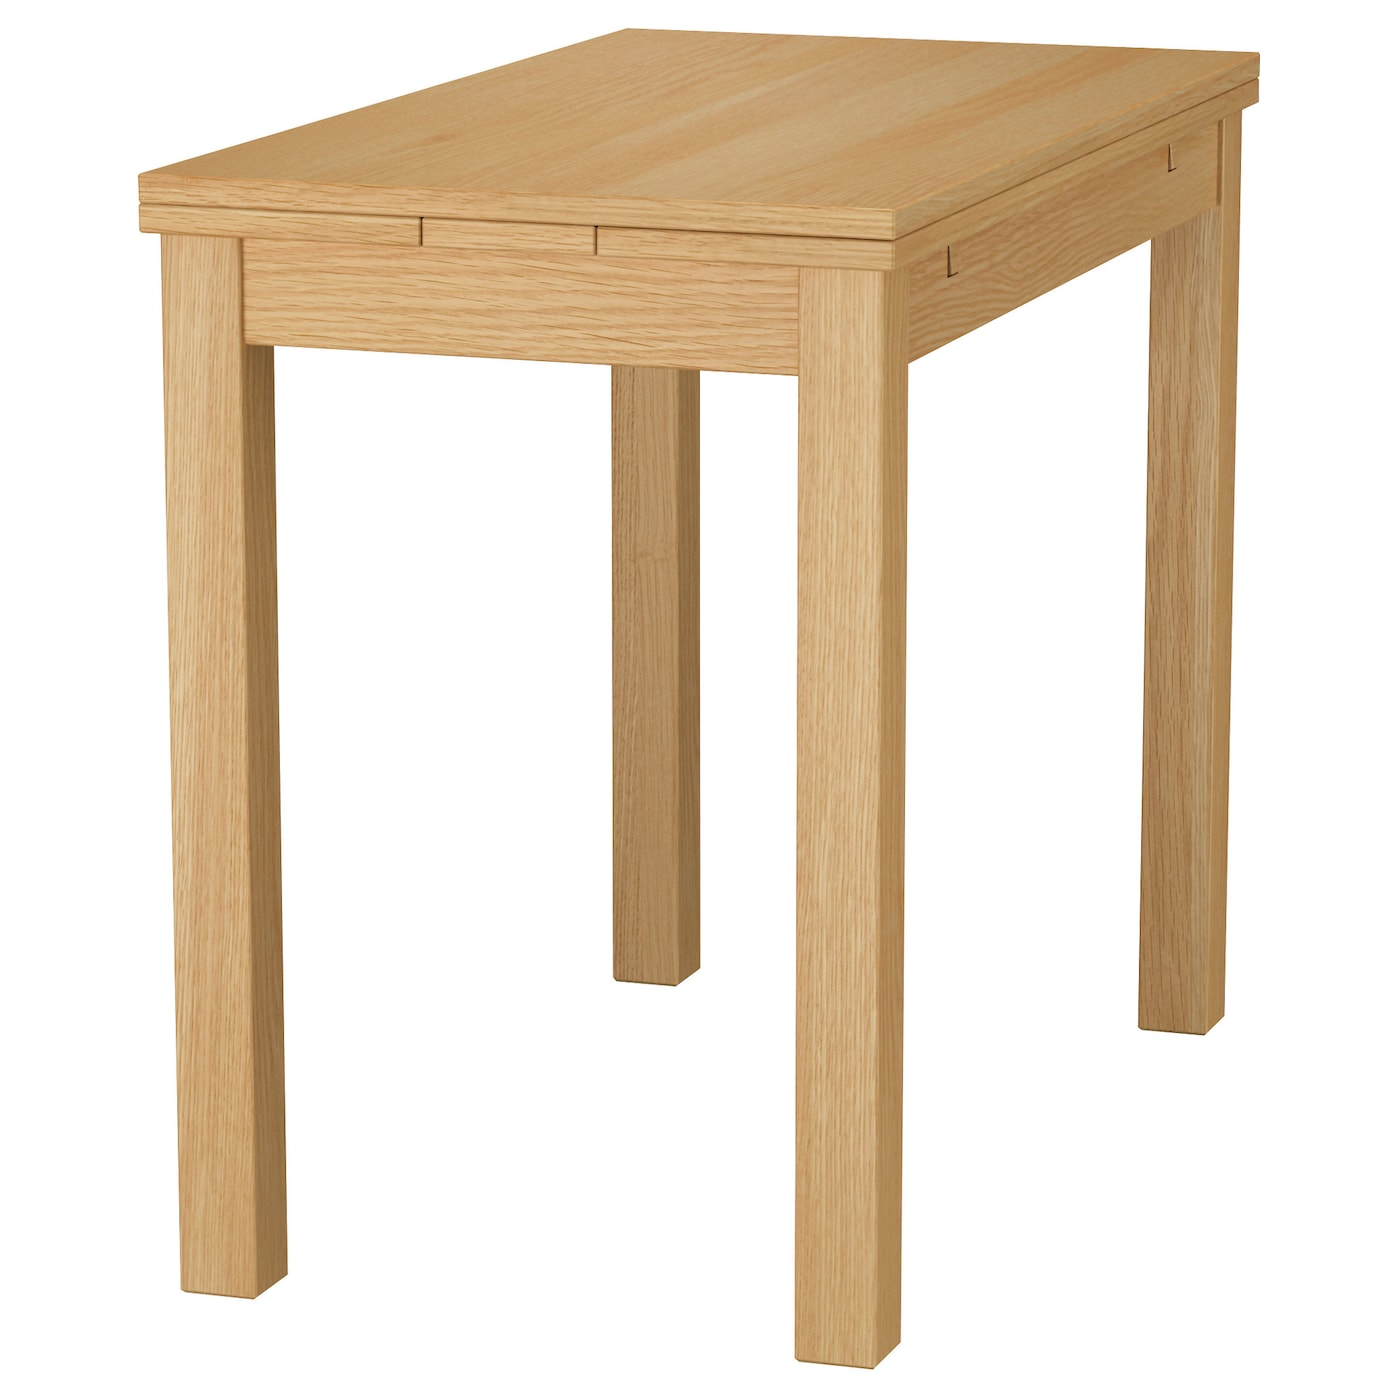 BJURSTA Extendable Table Oak Veneer 50 70 90x90 Cm IKEA